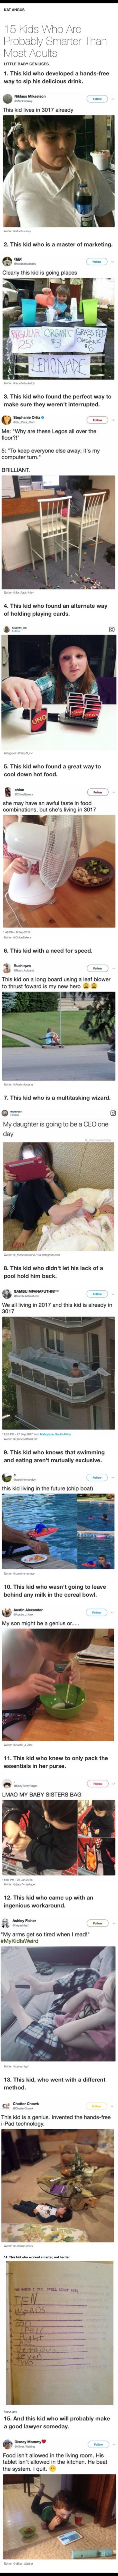 15 Kids Who Are Going Places